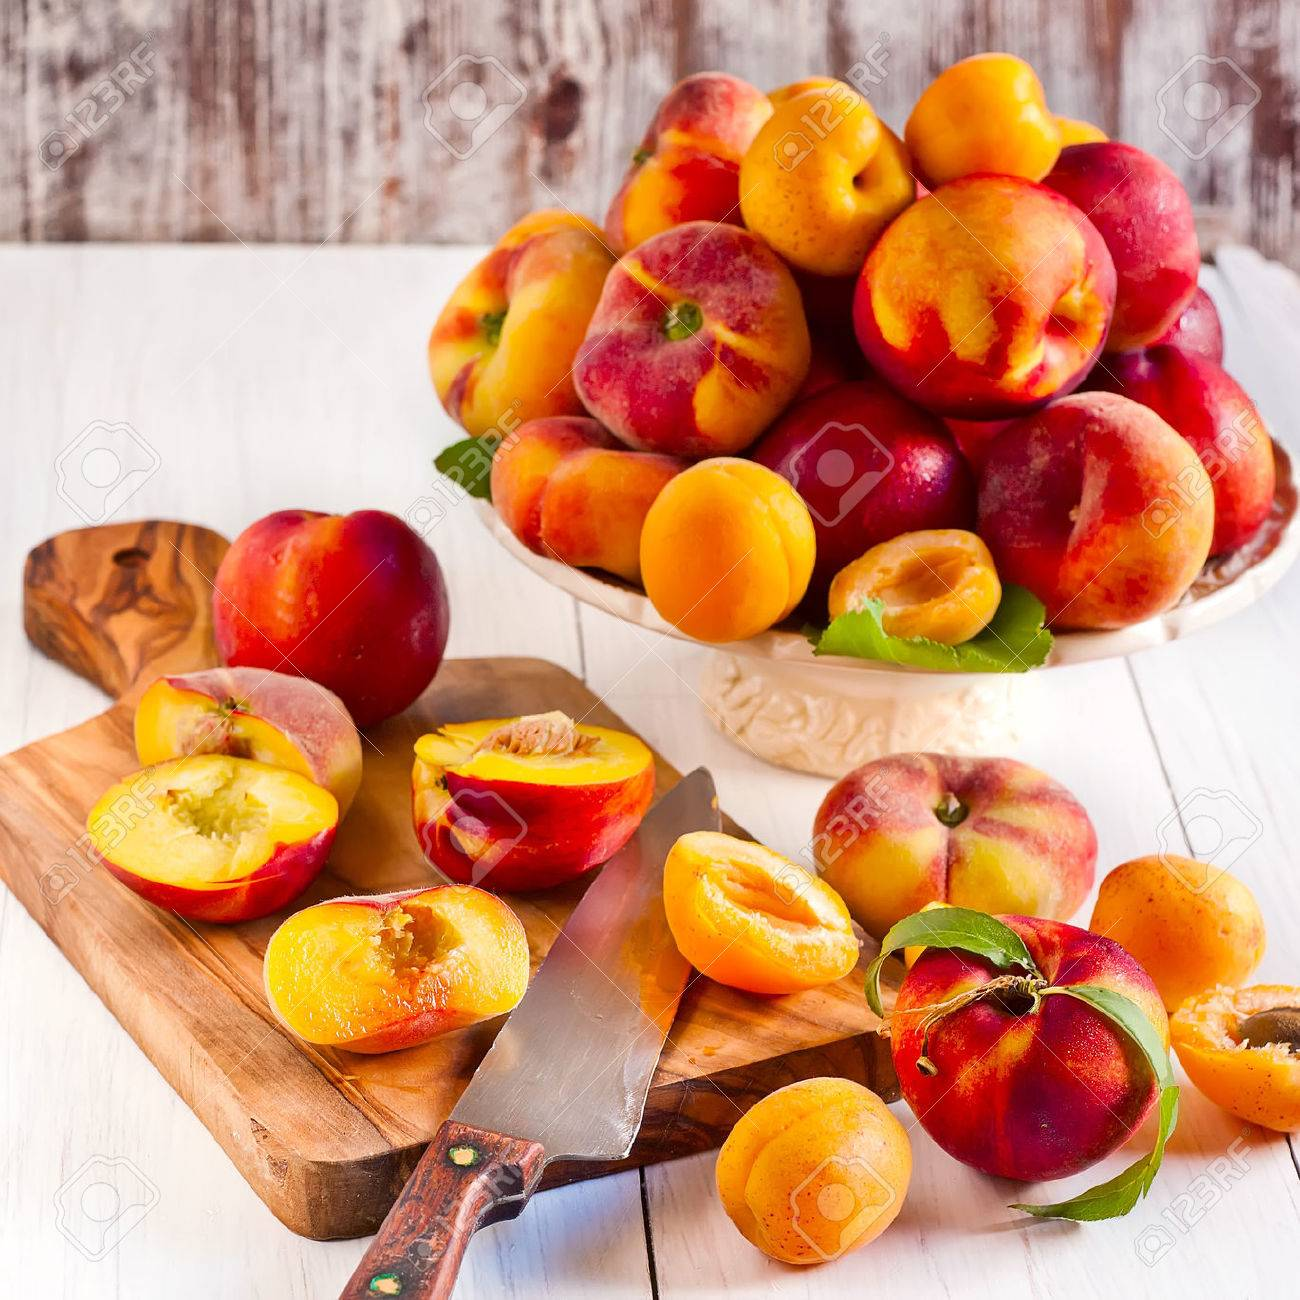 Ripe apricots, nectarines and saturn peaches on ceramic holder and olive wood desk with knife. - 29207544